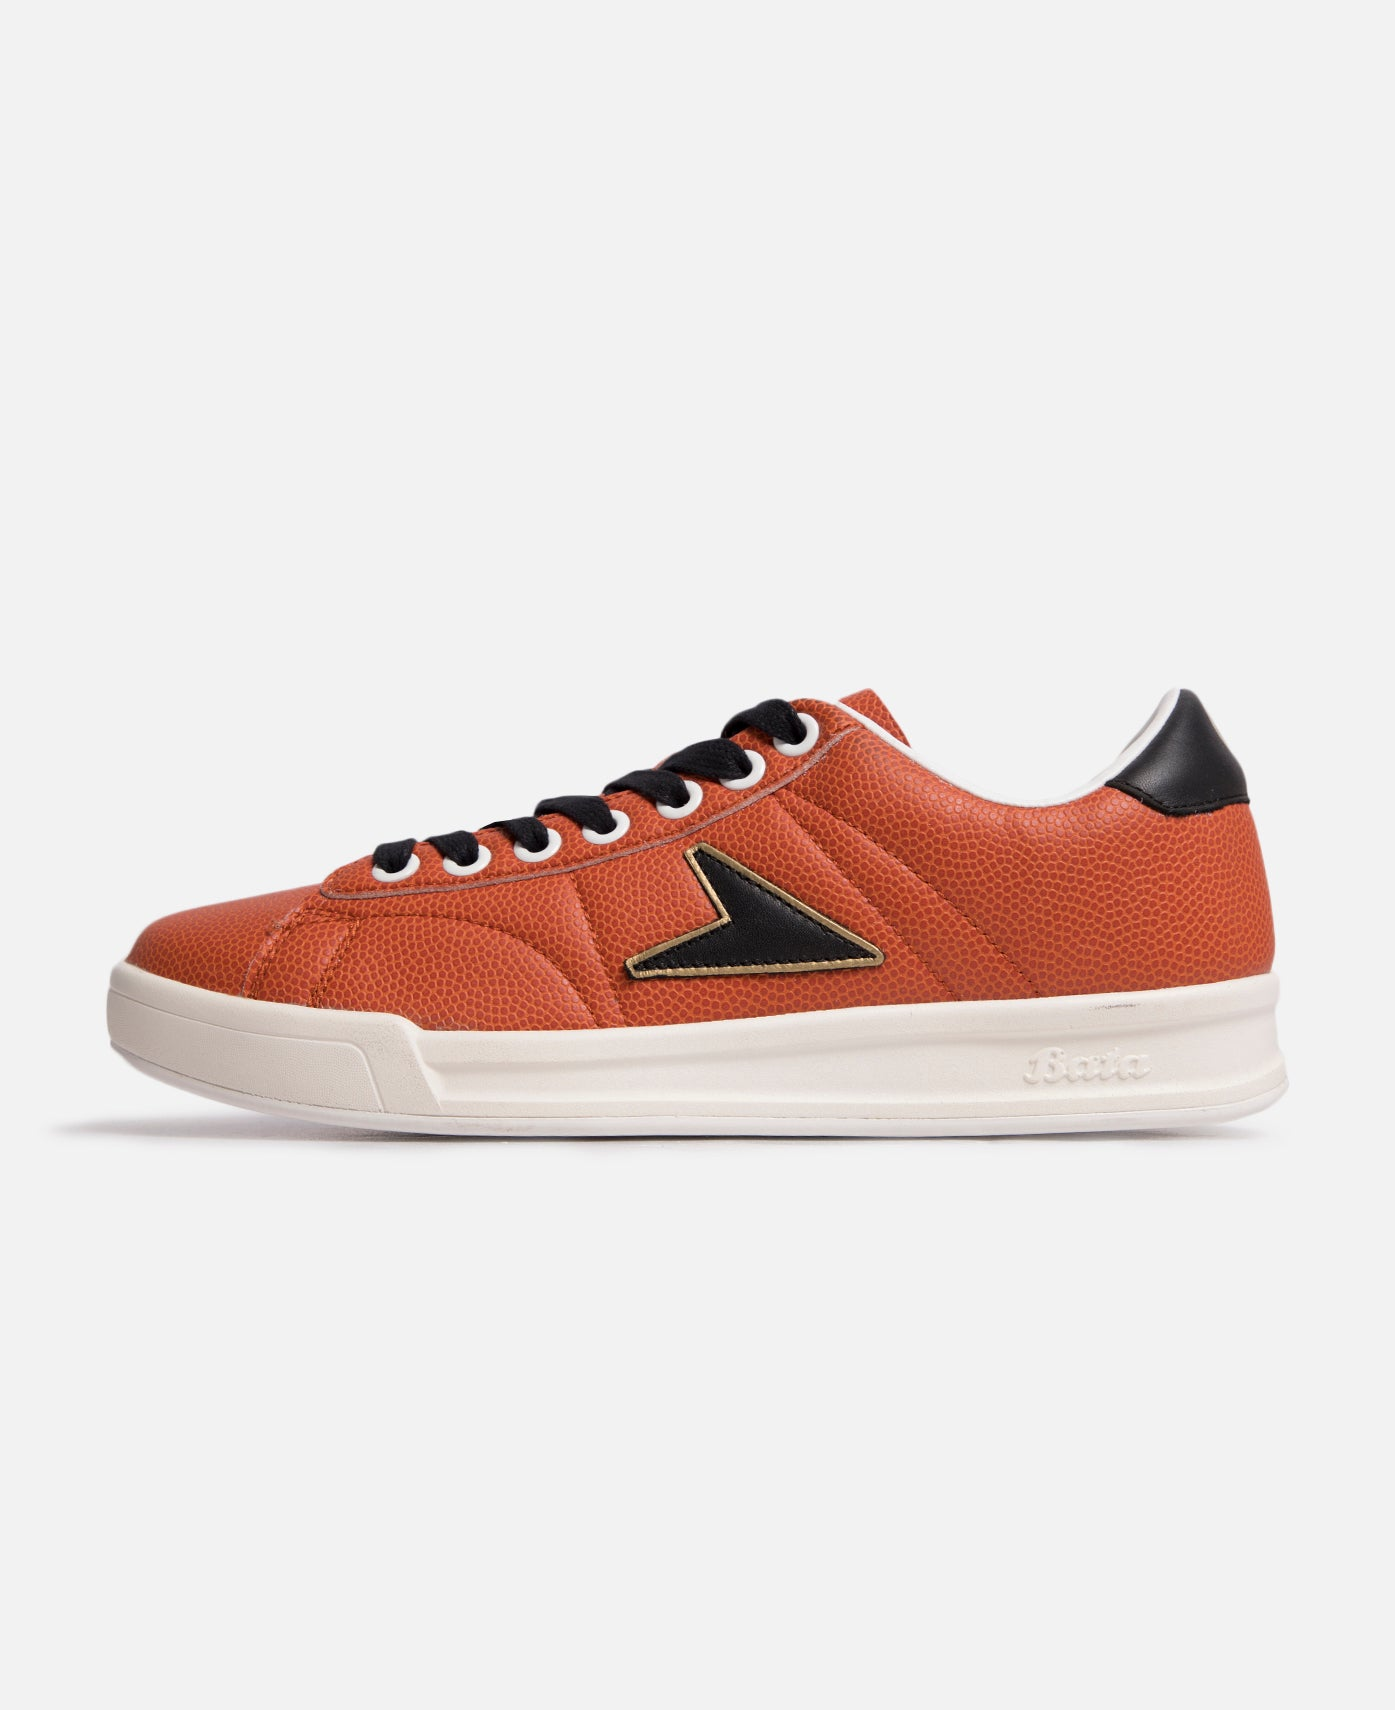 John Wooden Low Top Basketball Limited Edition